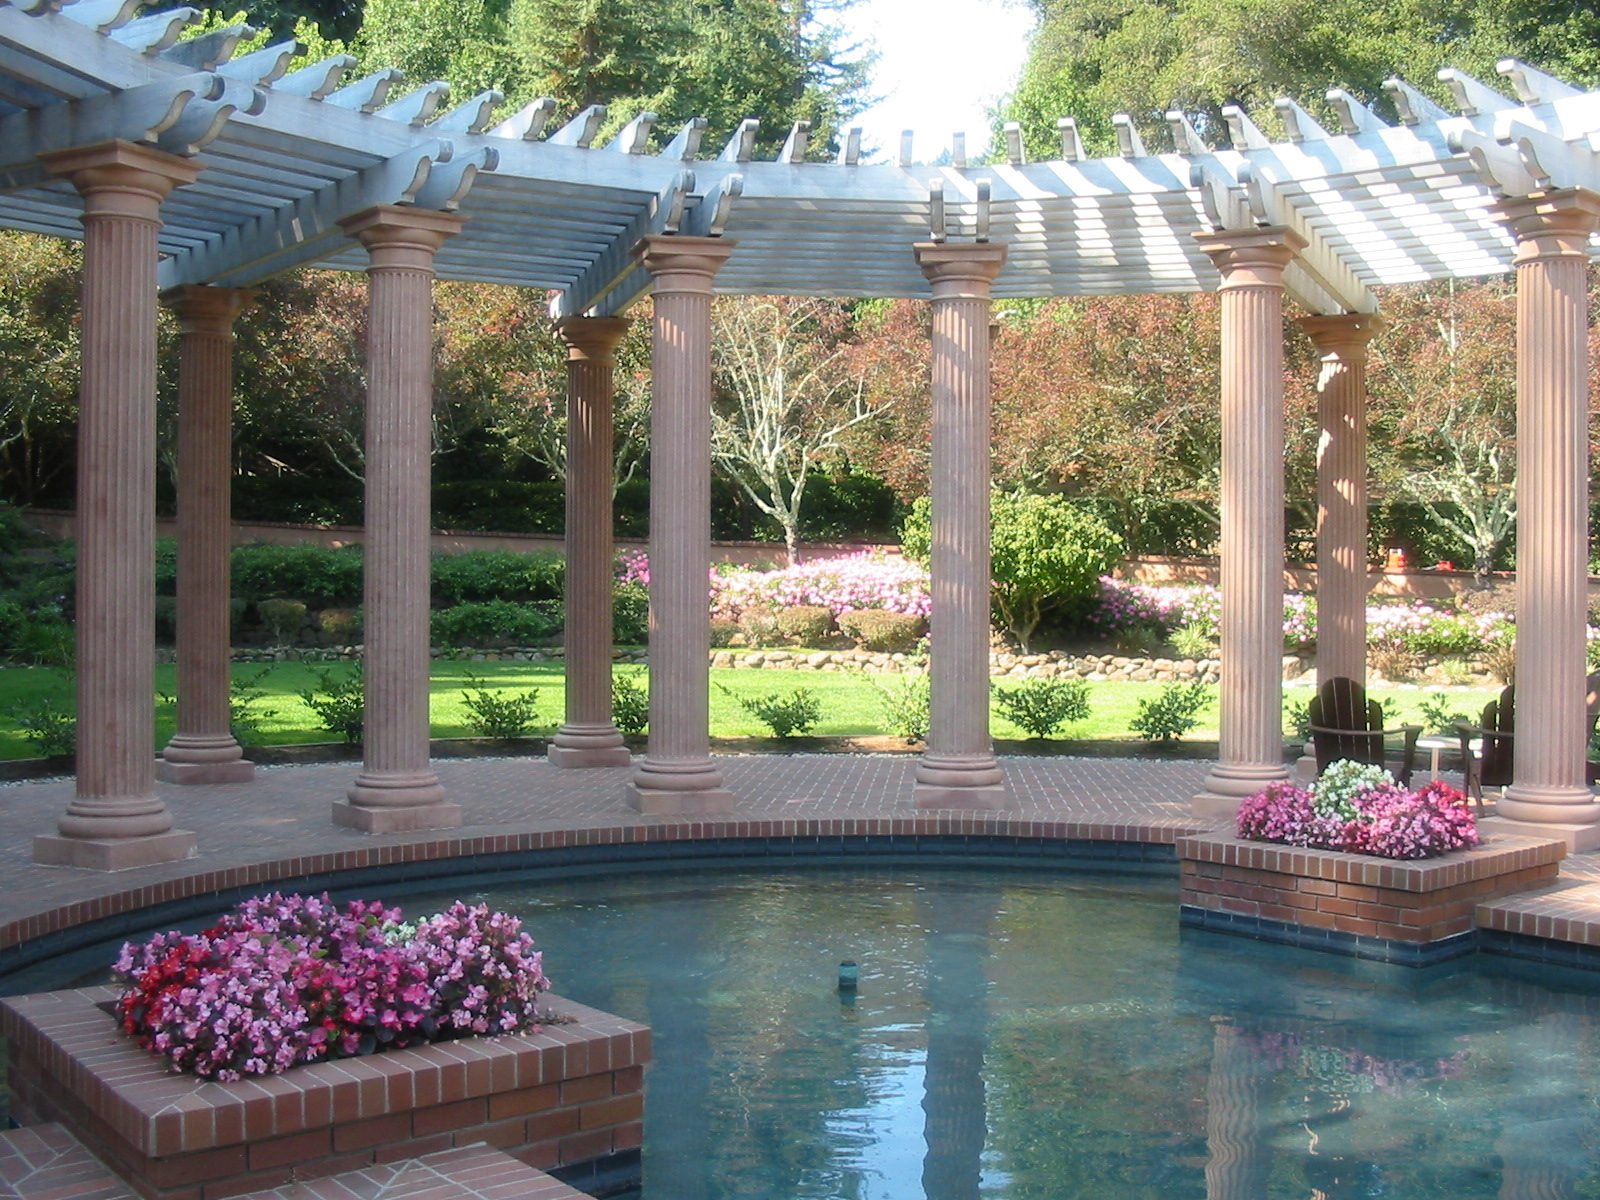 Maintain good looking and attractive landscapes